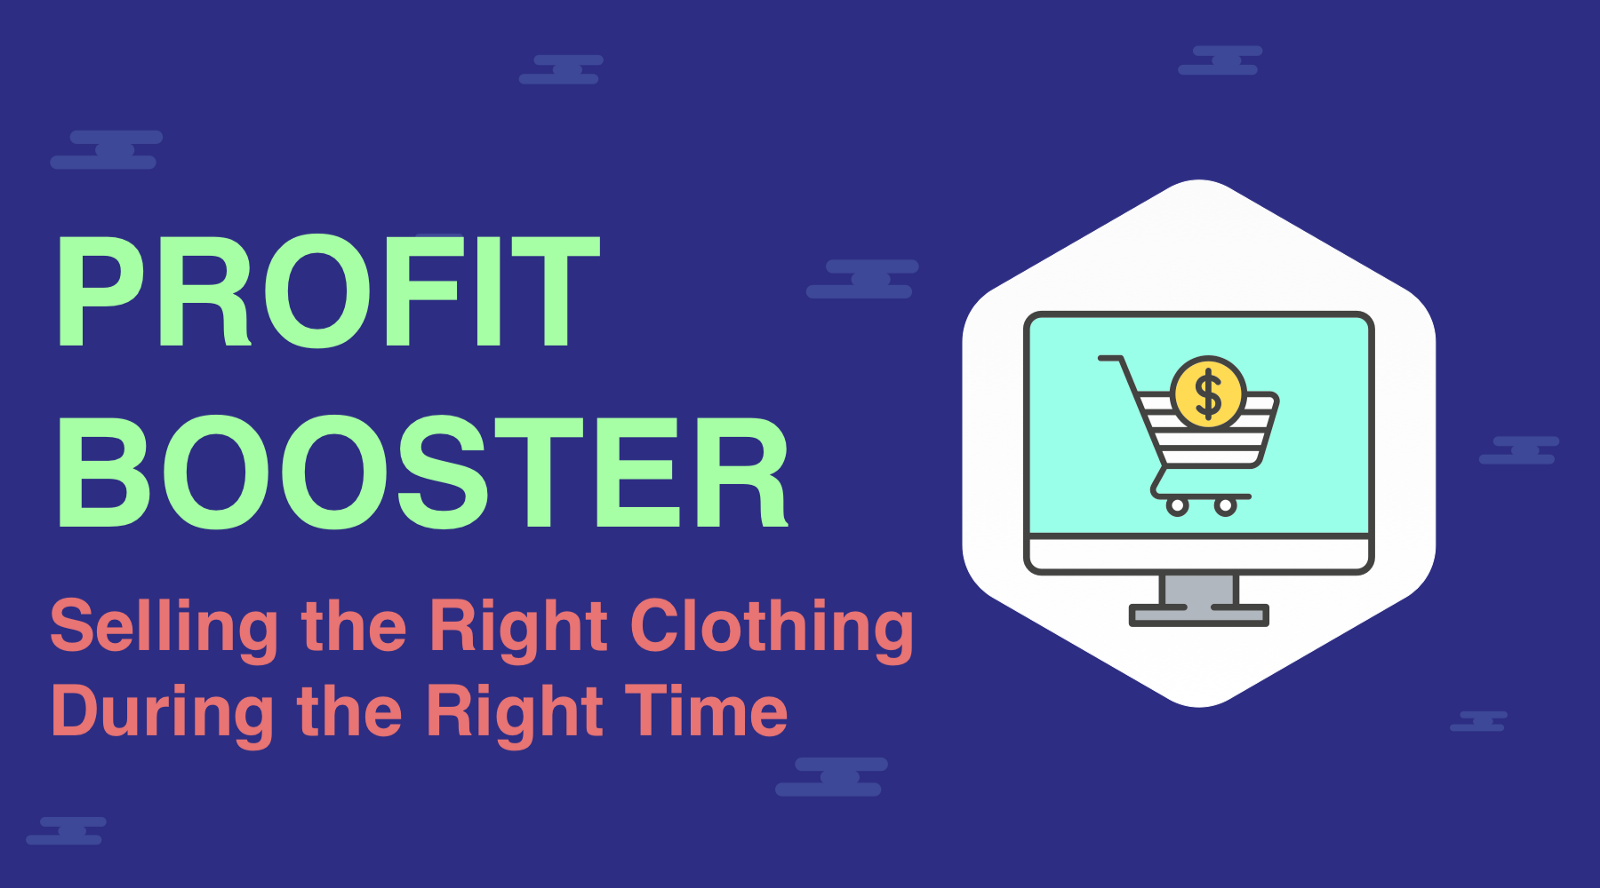 f36e6601f7f Profit boosters selling the right clothing during the right time png  1600x888 Ebay tops blue pink